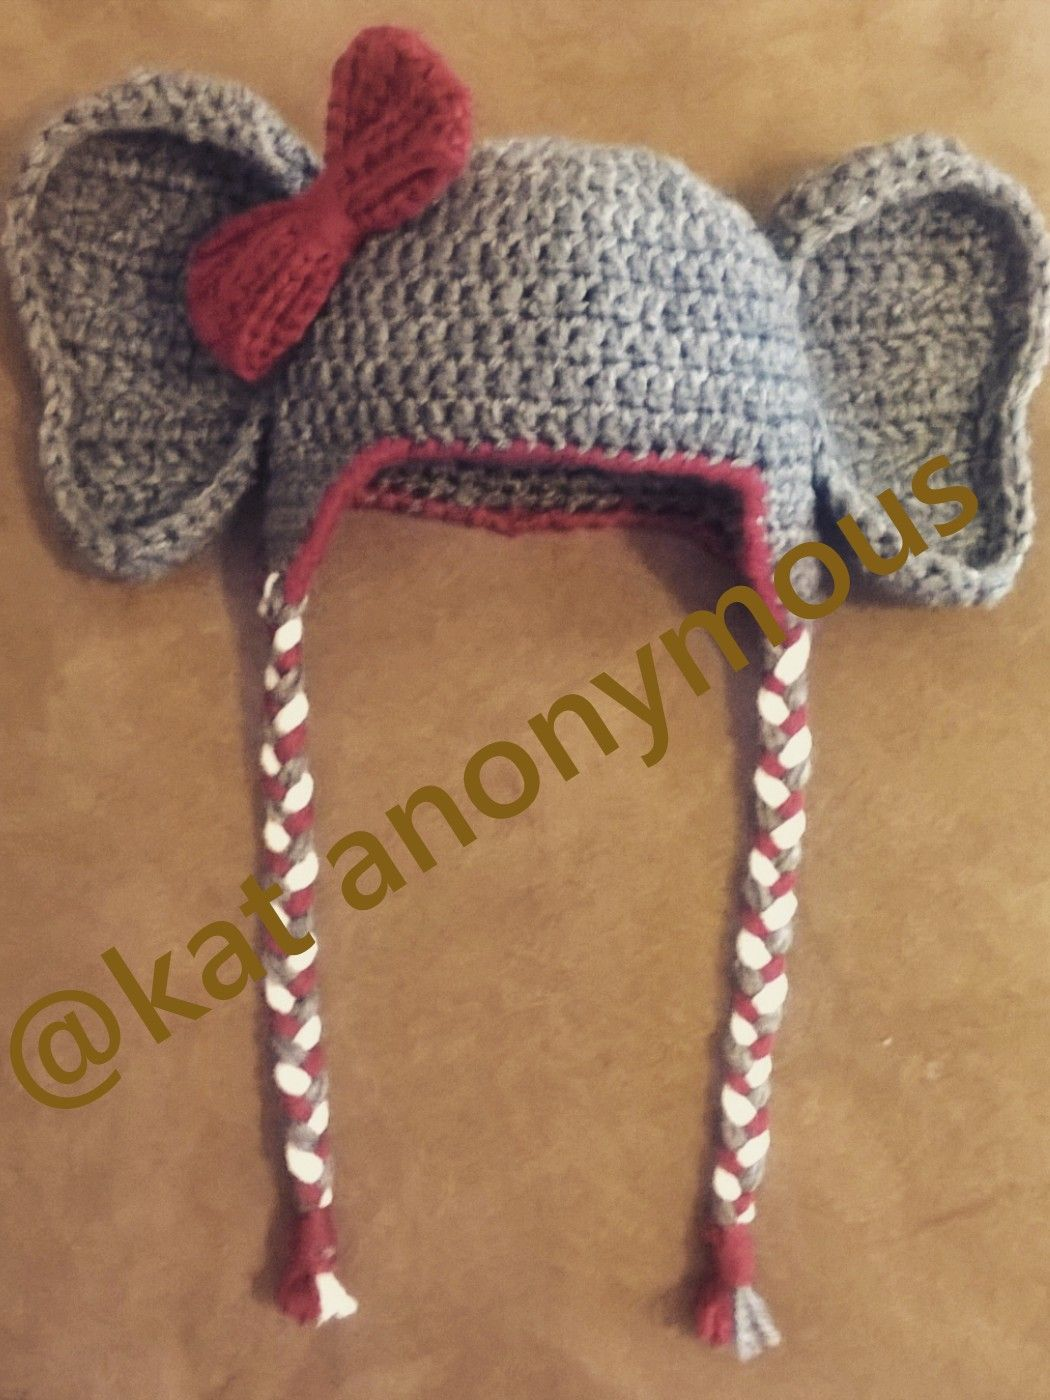 Crochet Alabama Elephant Earflap Hat (2nd post) Ear flap hat pattern : http://allicrafts.blogspot.com/2011/01/free-pattern-baby-earflap-hat-3-months.html?m=1 Bow pattern modified from here: http://www.craftinessisnotoptional.com/2013/01/easy-crochet-bow-tutorialpattern.html Couldn't find a pattern I liked for ears, but this is what I did: Crocheted by K Olds 12/15/15. Using 2 strands of worsted weight yarn and I/9 hook, Chain 7. R1: Dc 3rd Ch from hook and each ...